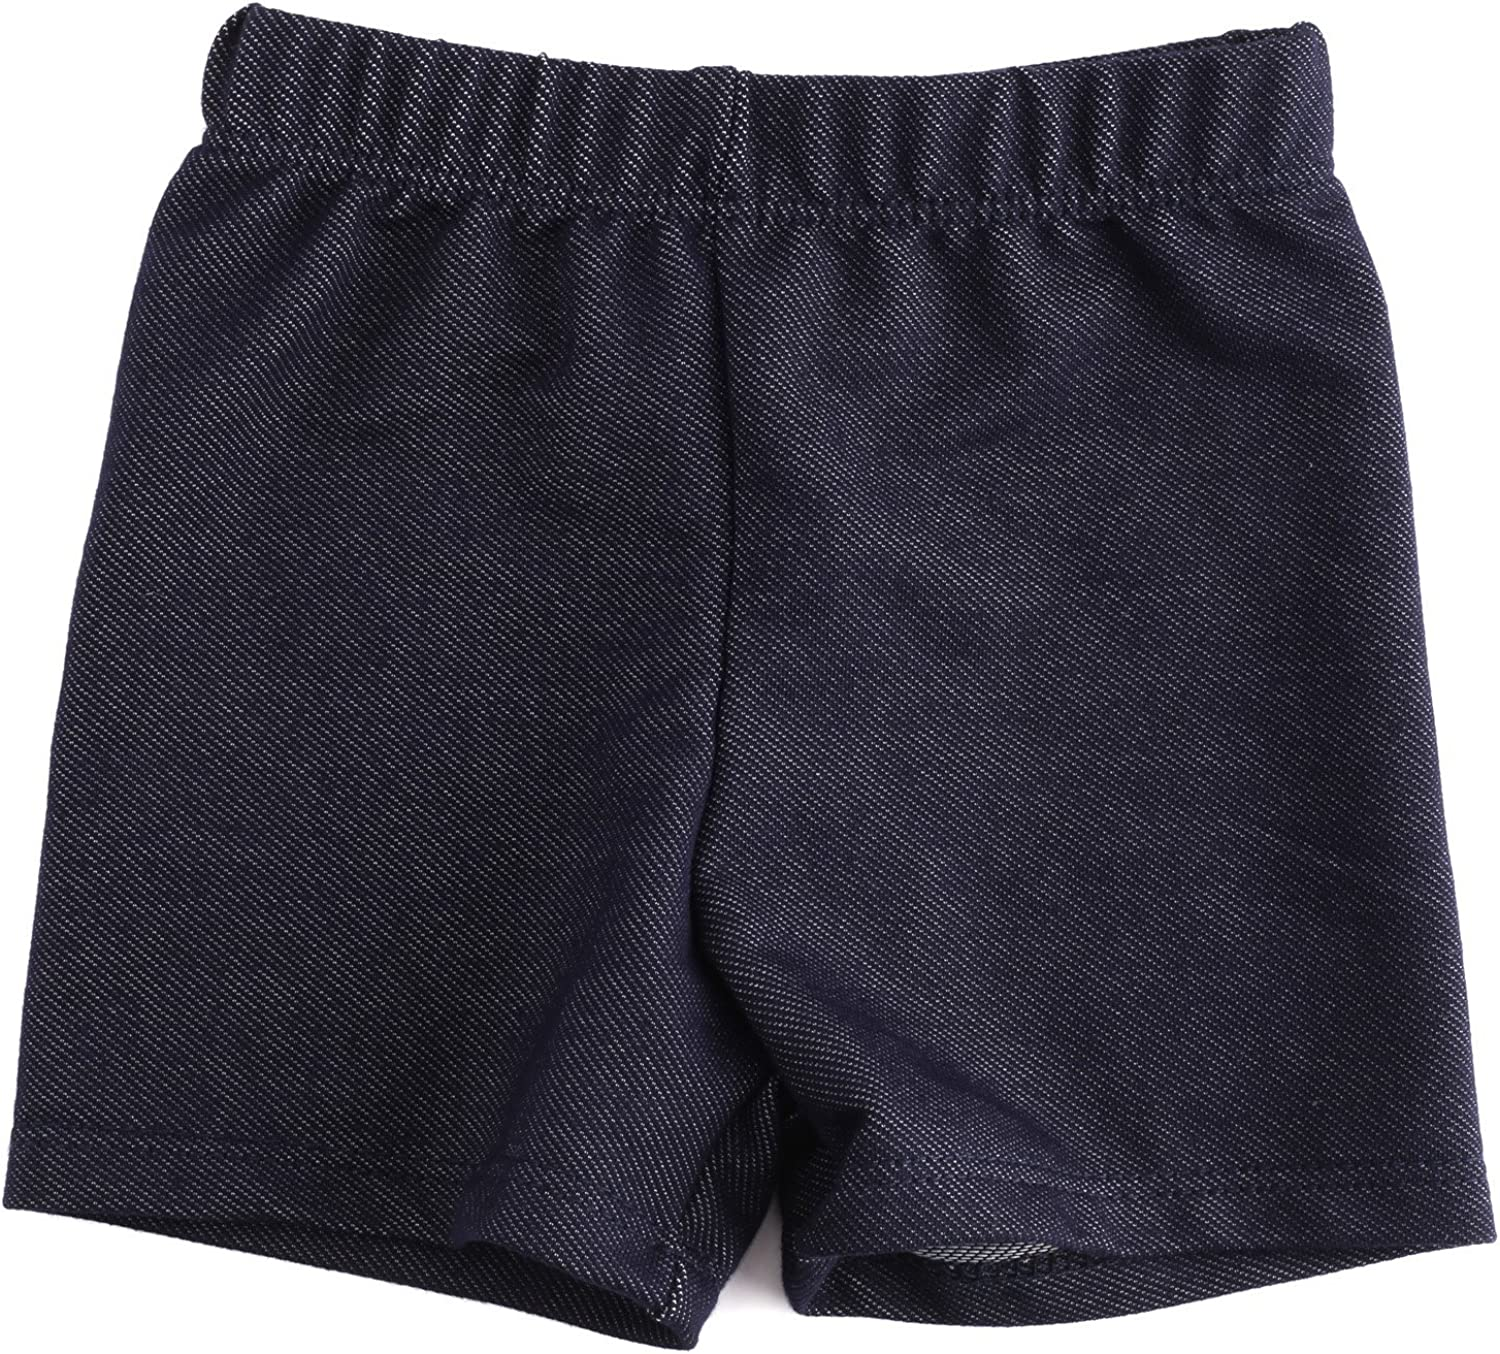 DMK Stretch Knit Tulsa Mall Popular products Denim Look Toddlers Shorts Babies for